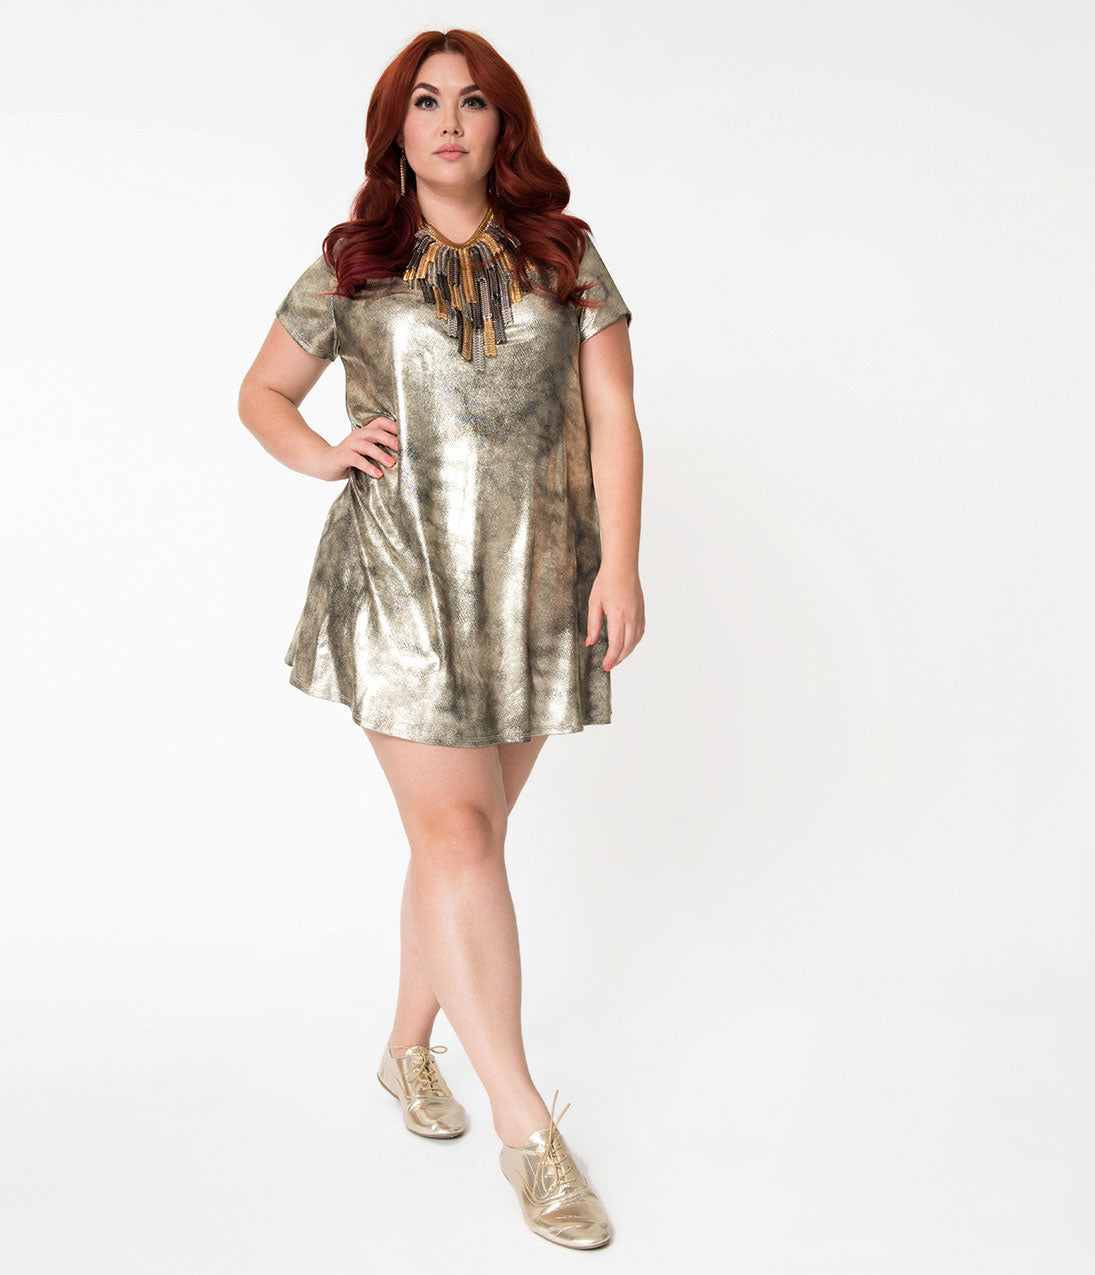 1960s Dresses – A Rainbow of 50 Dresses (Pictures) Plus Size Metallic Brushed Gold Sleeved Shift Dress $48.00 AT vintagedancer.com